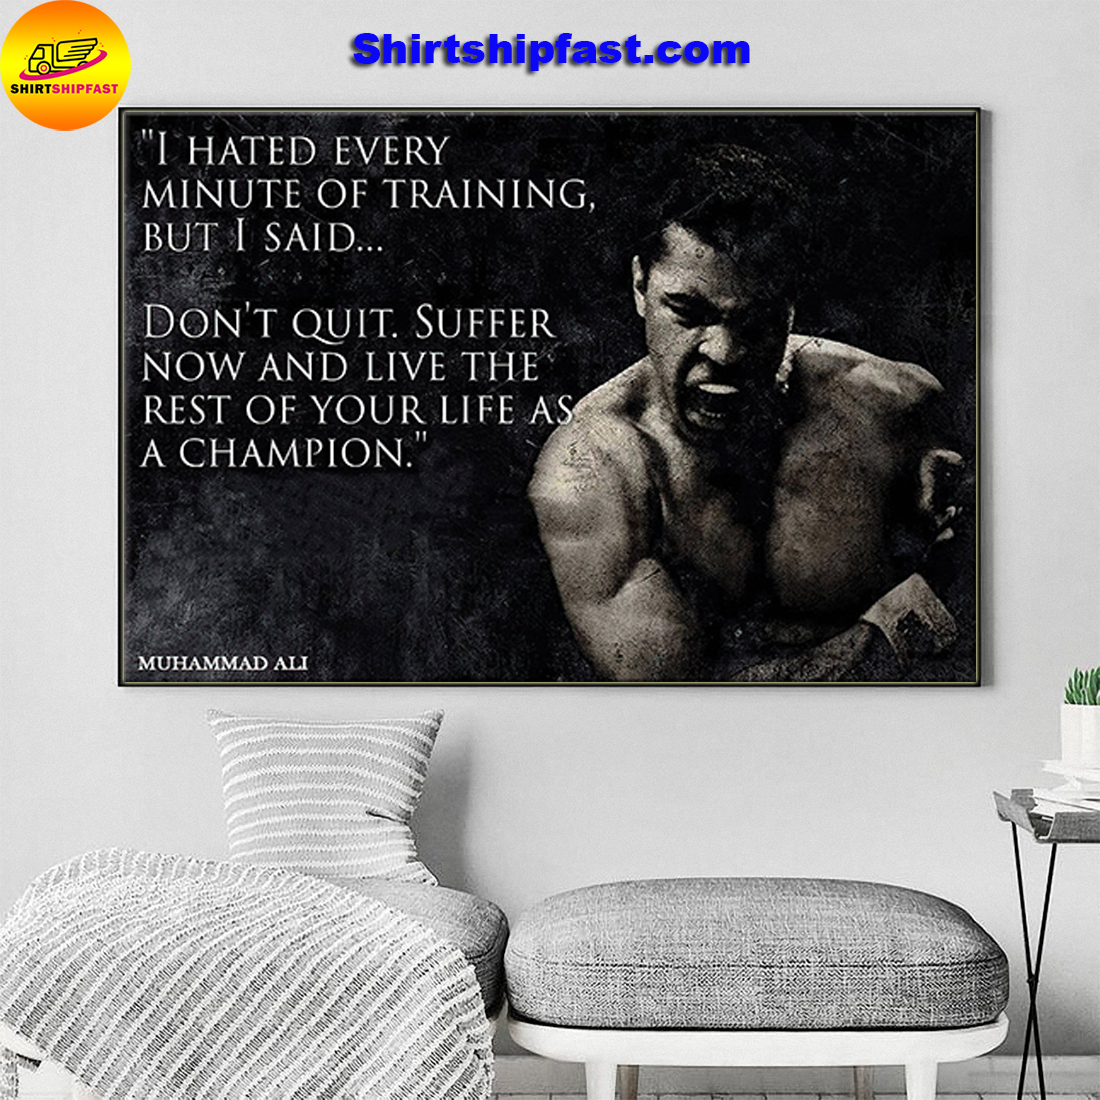 I hate every minute of training but I said don't quit Muhammad ali quote poster - Picture 2